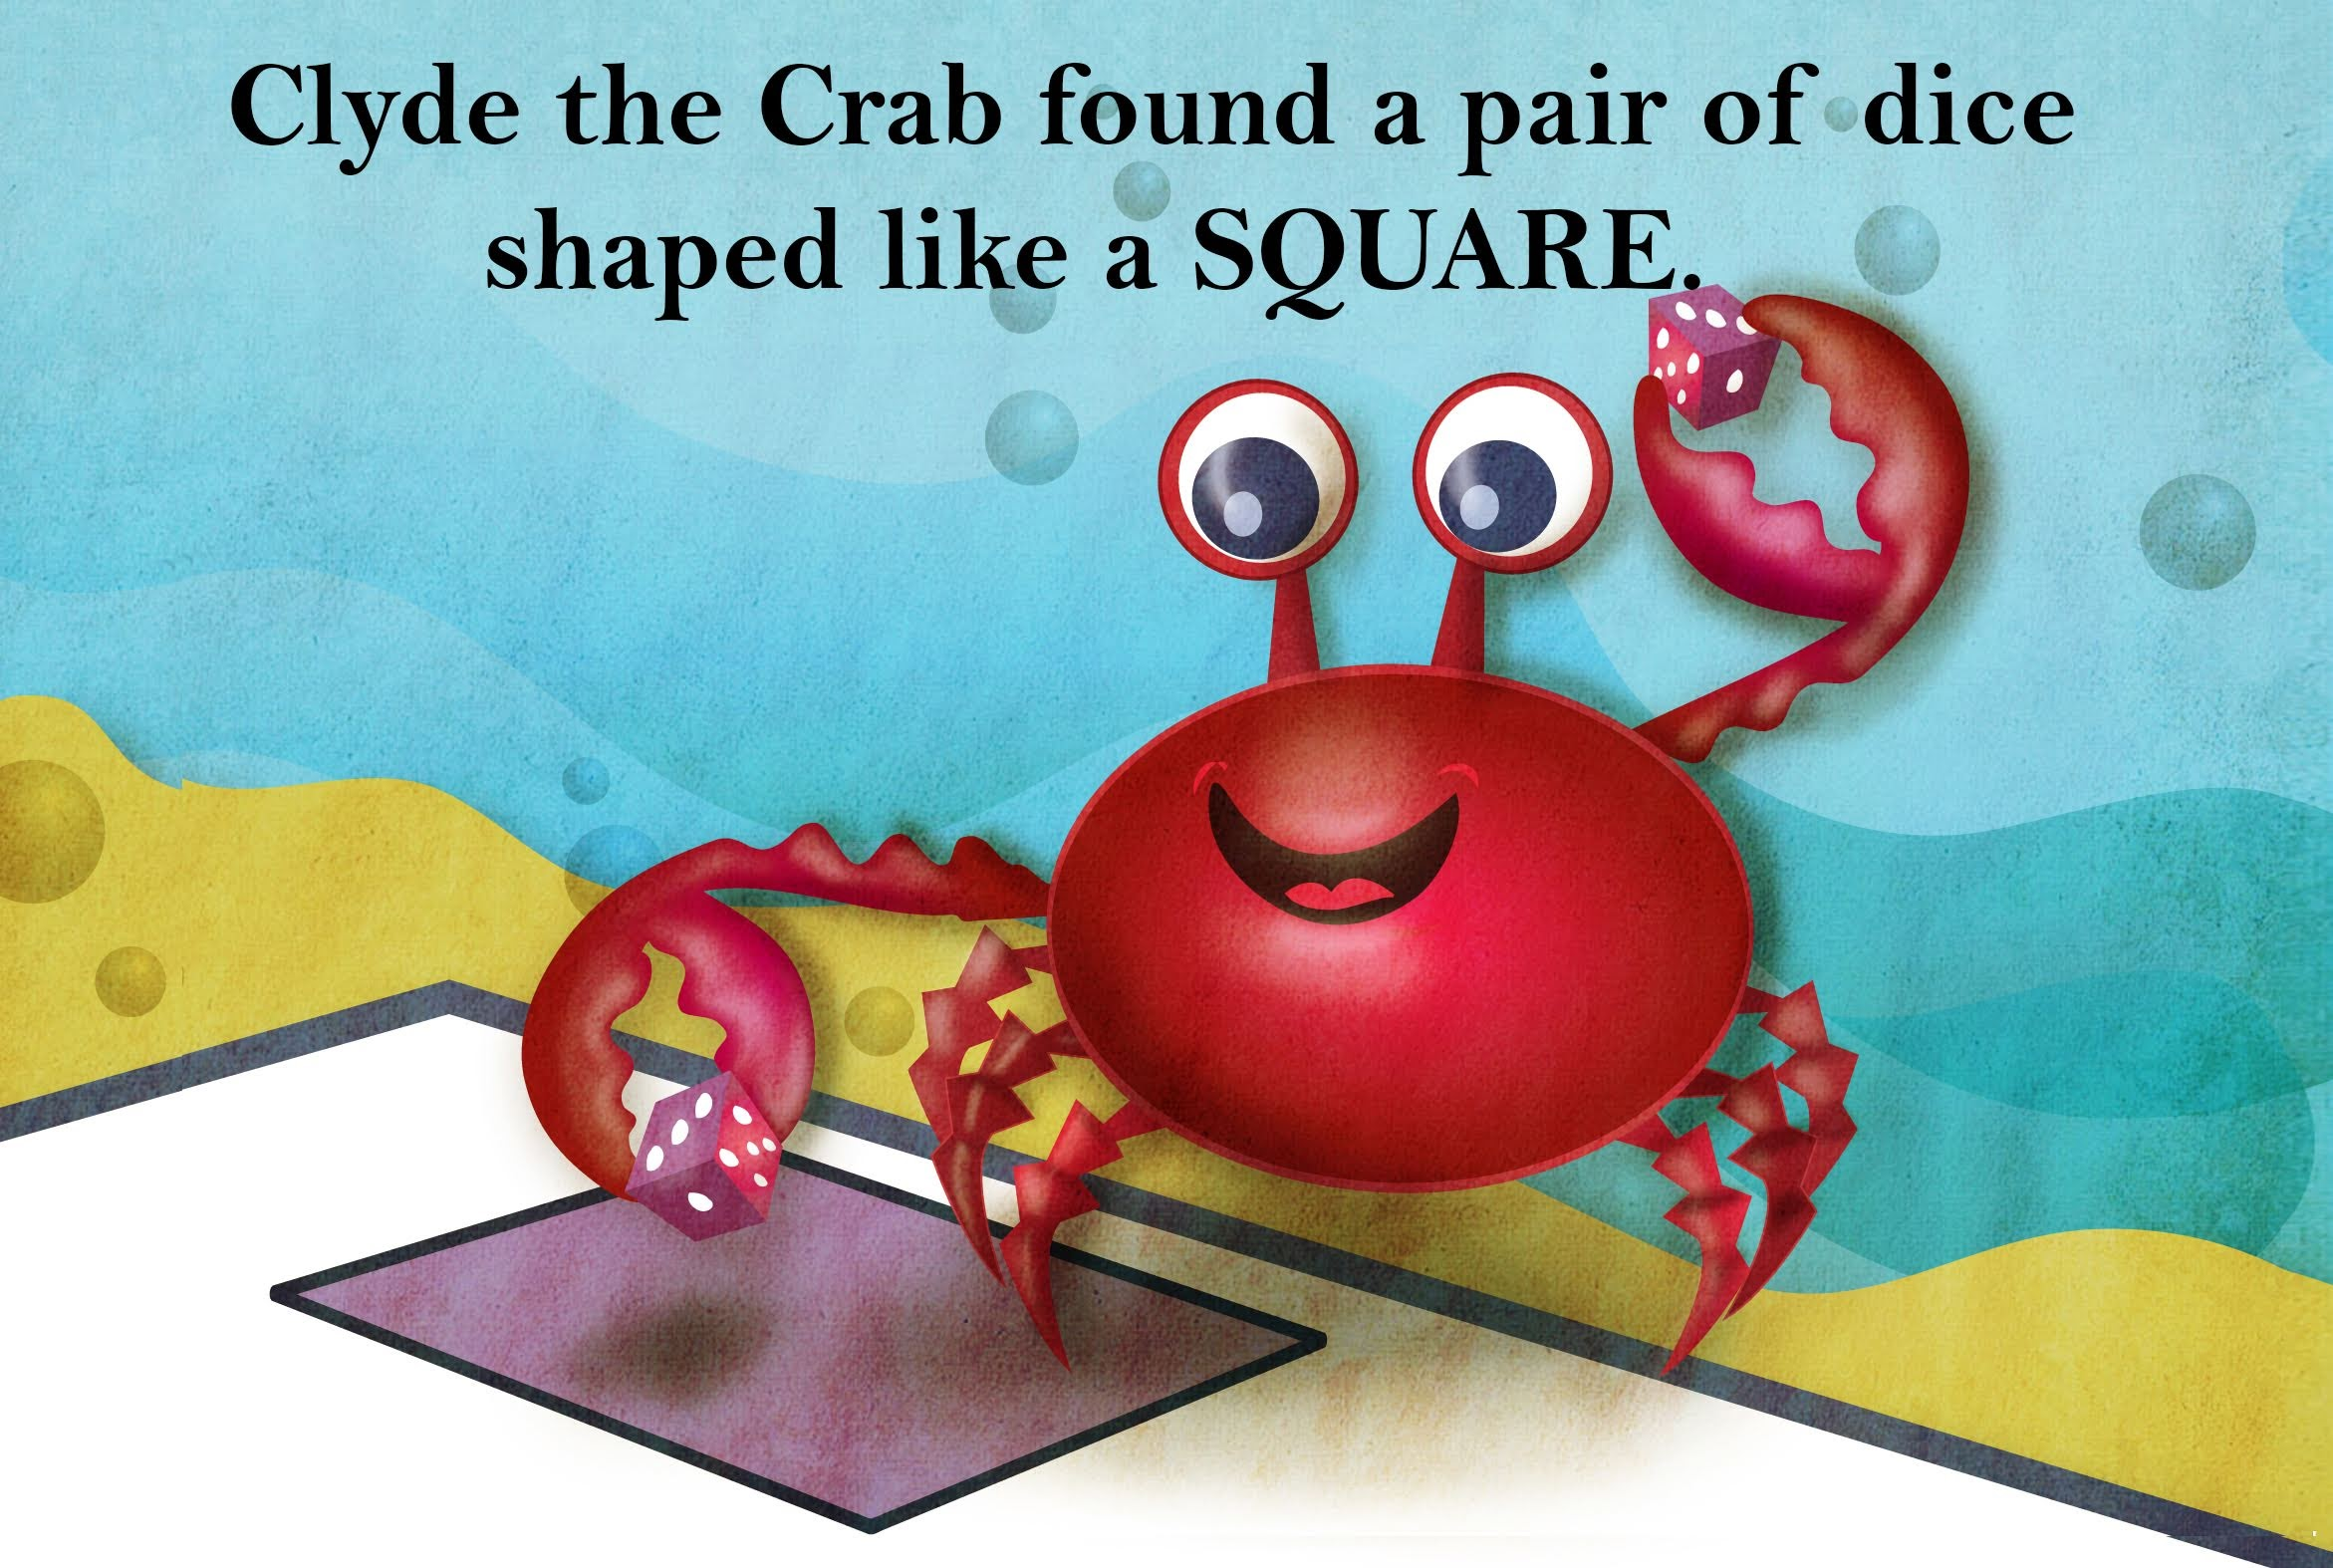 slide 4 The Octopus Book - Oliver's Birthday, by Bonnie Lady Lee. [Excerpt] Clyde the Crab found a pair of dice shaped like a square.